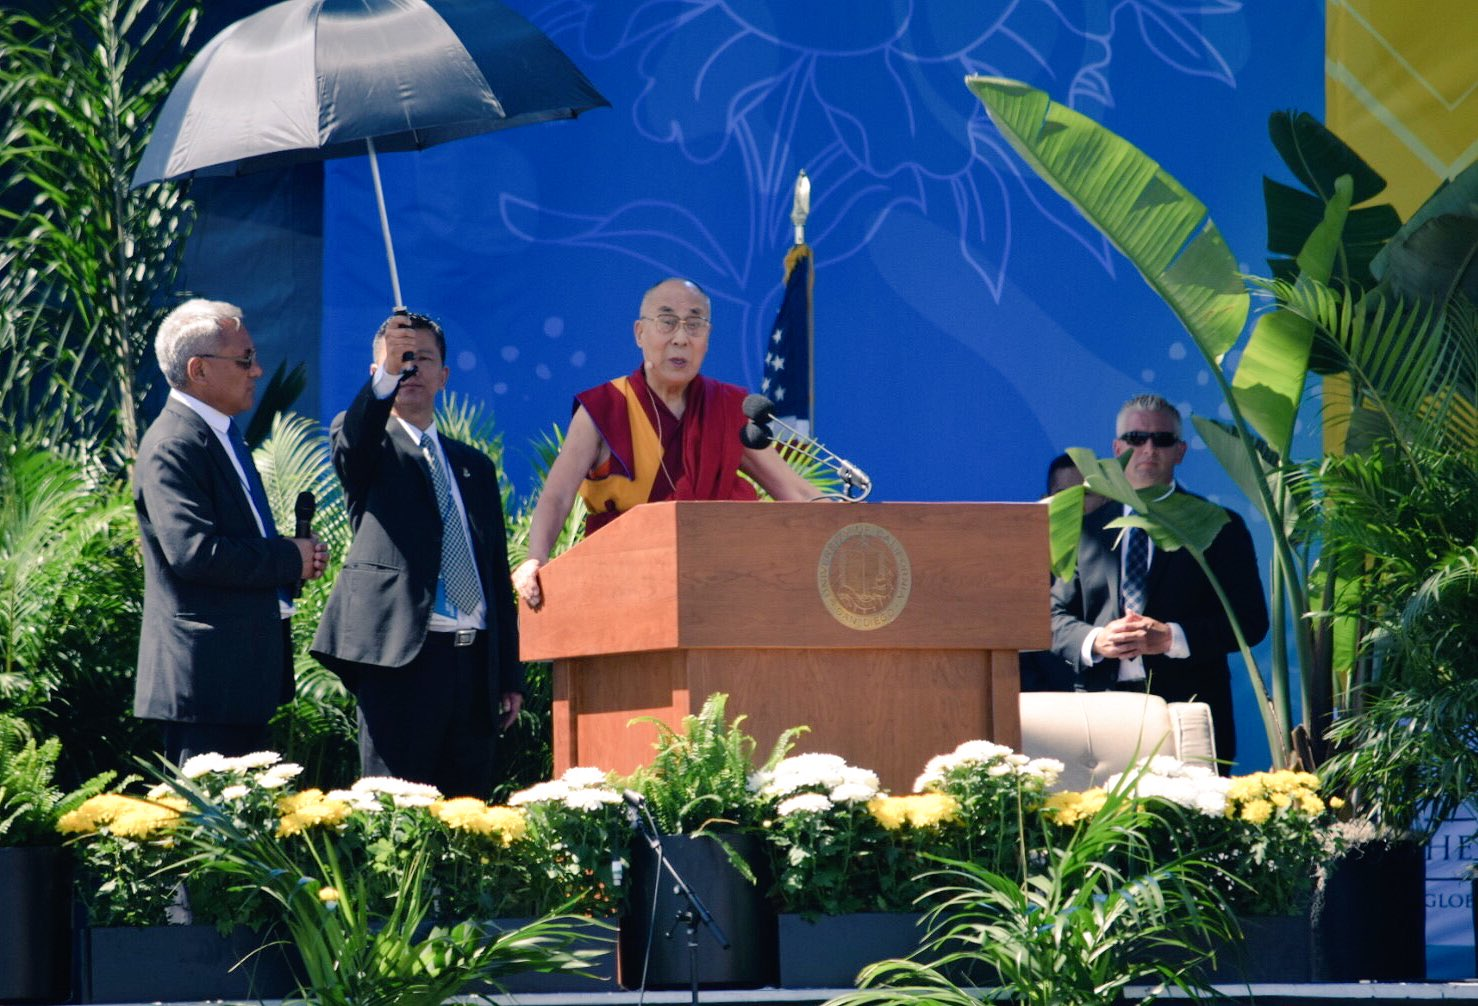 When I think I am just one human being, that creates loneliness; we are one human family - @DalaiLama at #UCSD #GlobalizingCompassion https://t.co/K3m1Yqwava